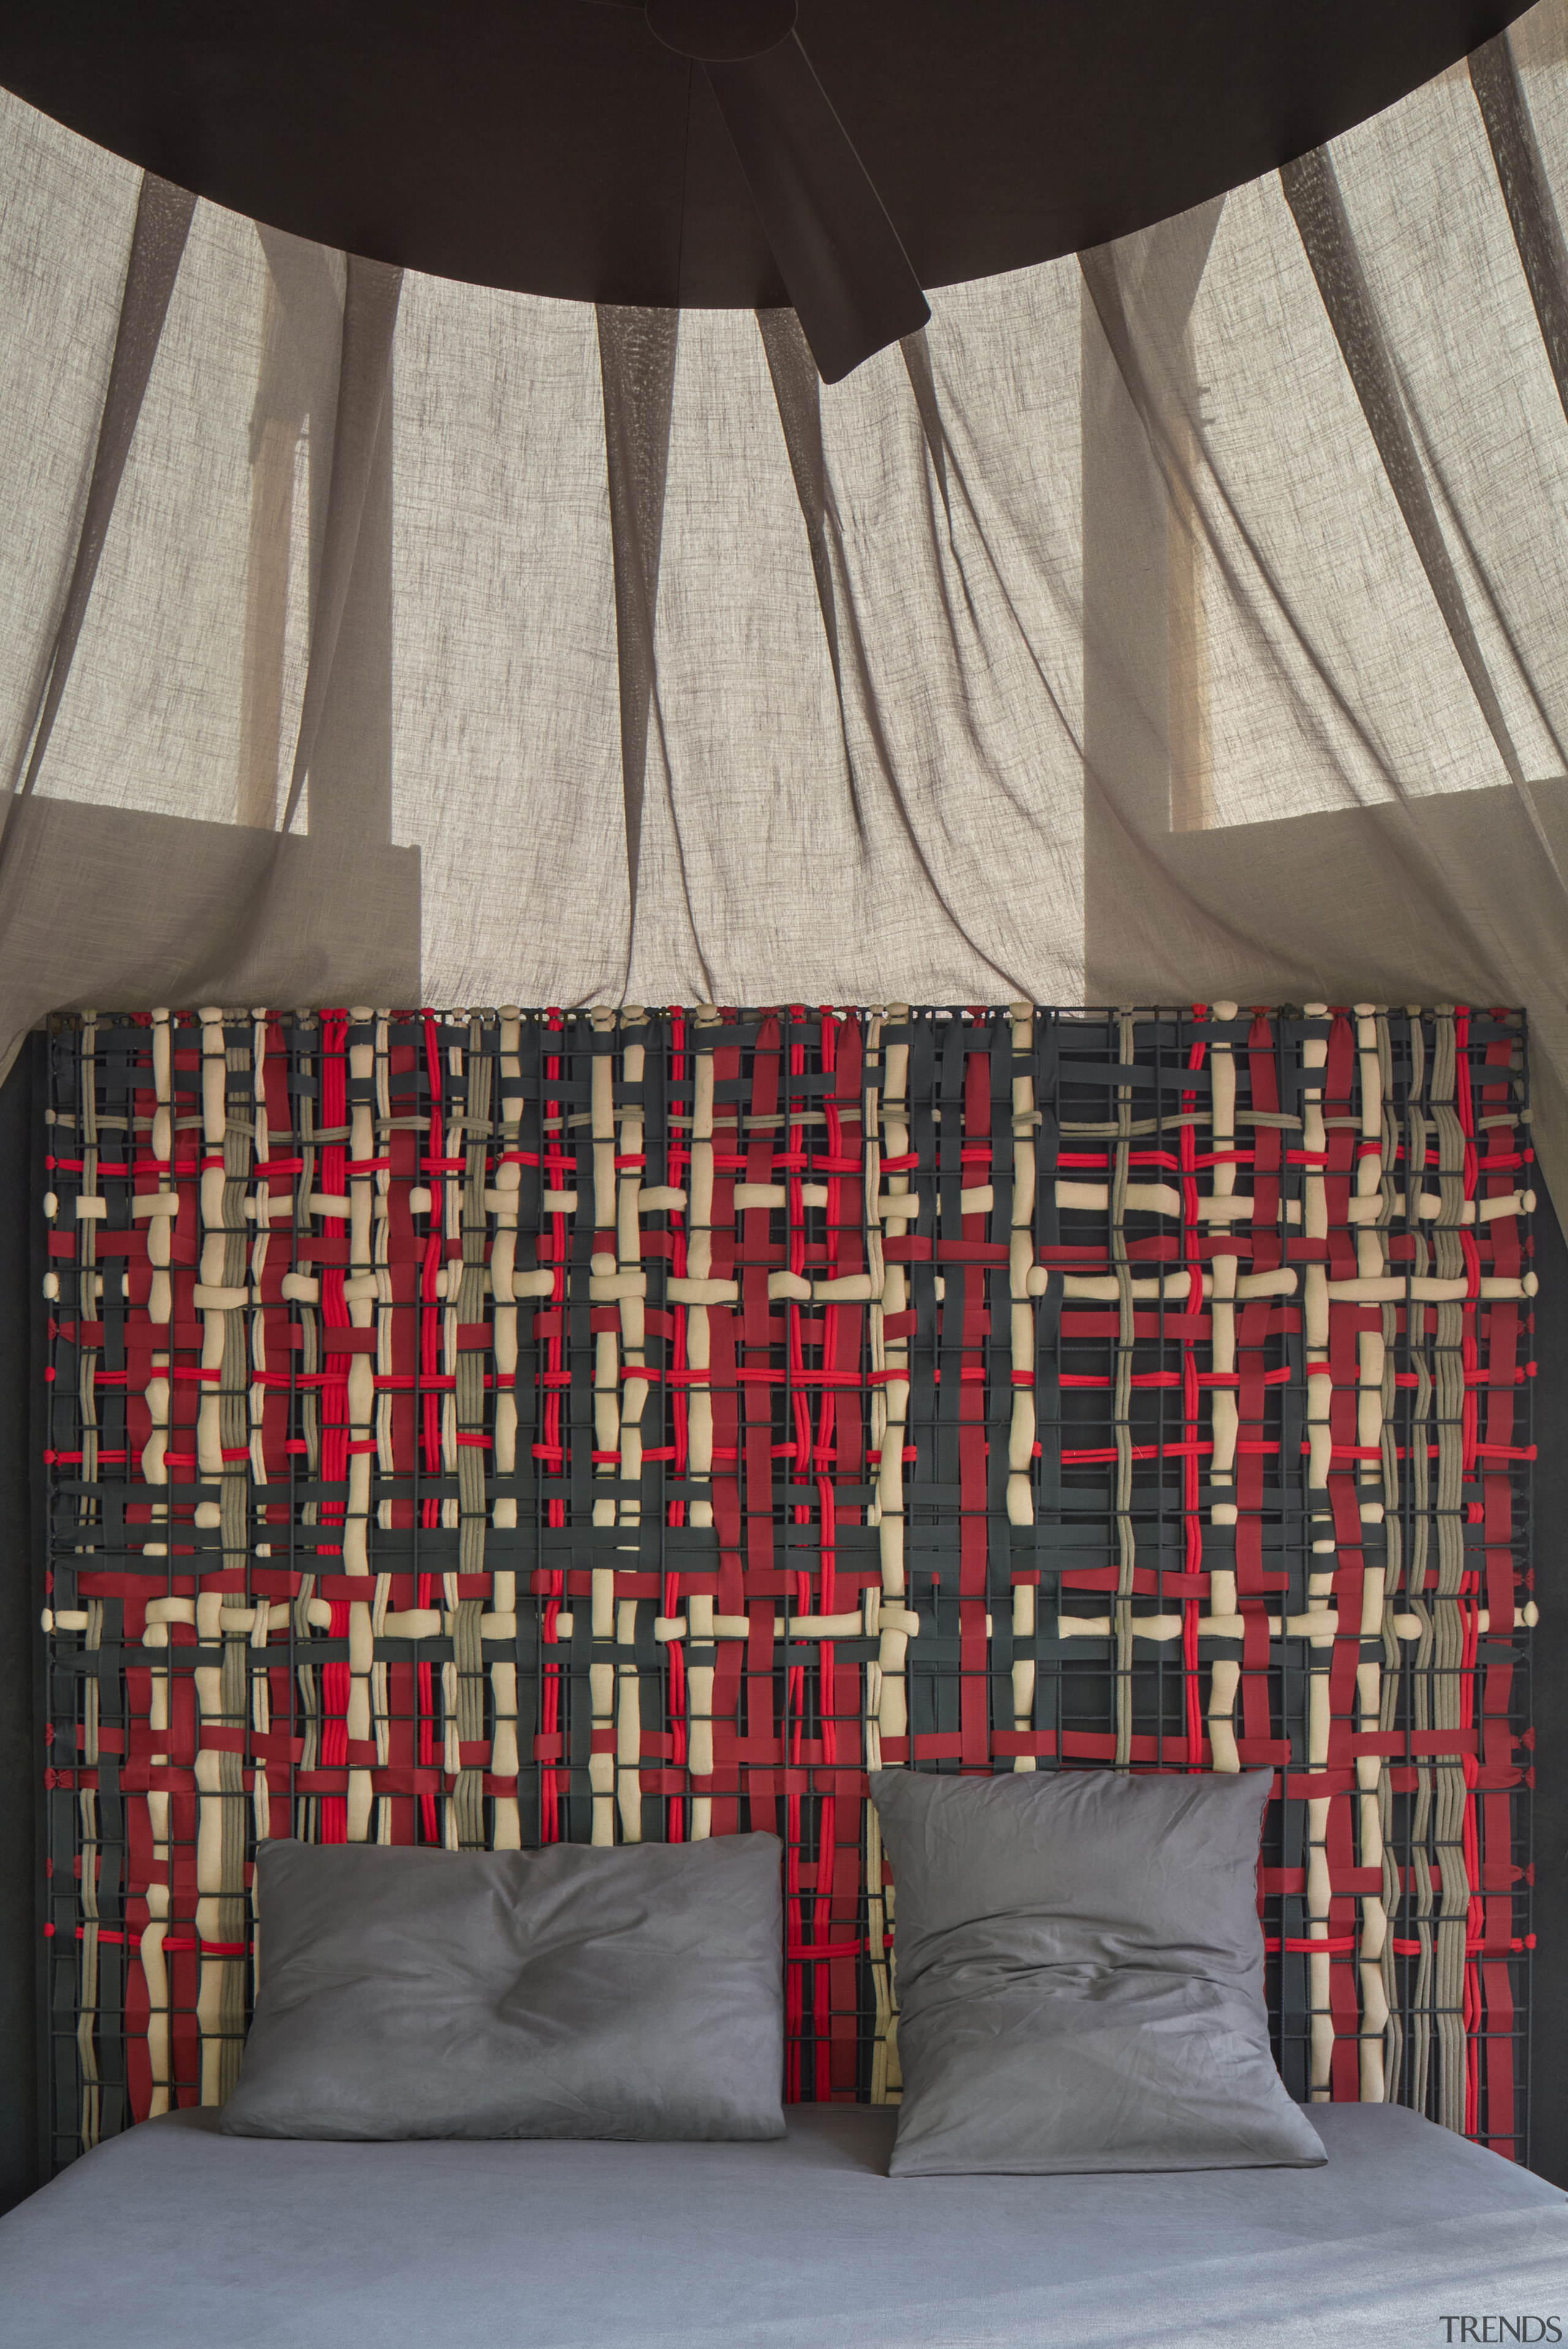 The artistic design for the woven headboards suggests